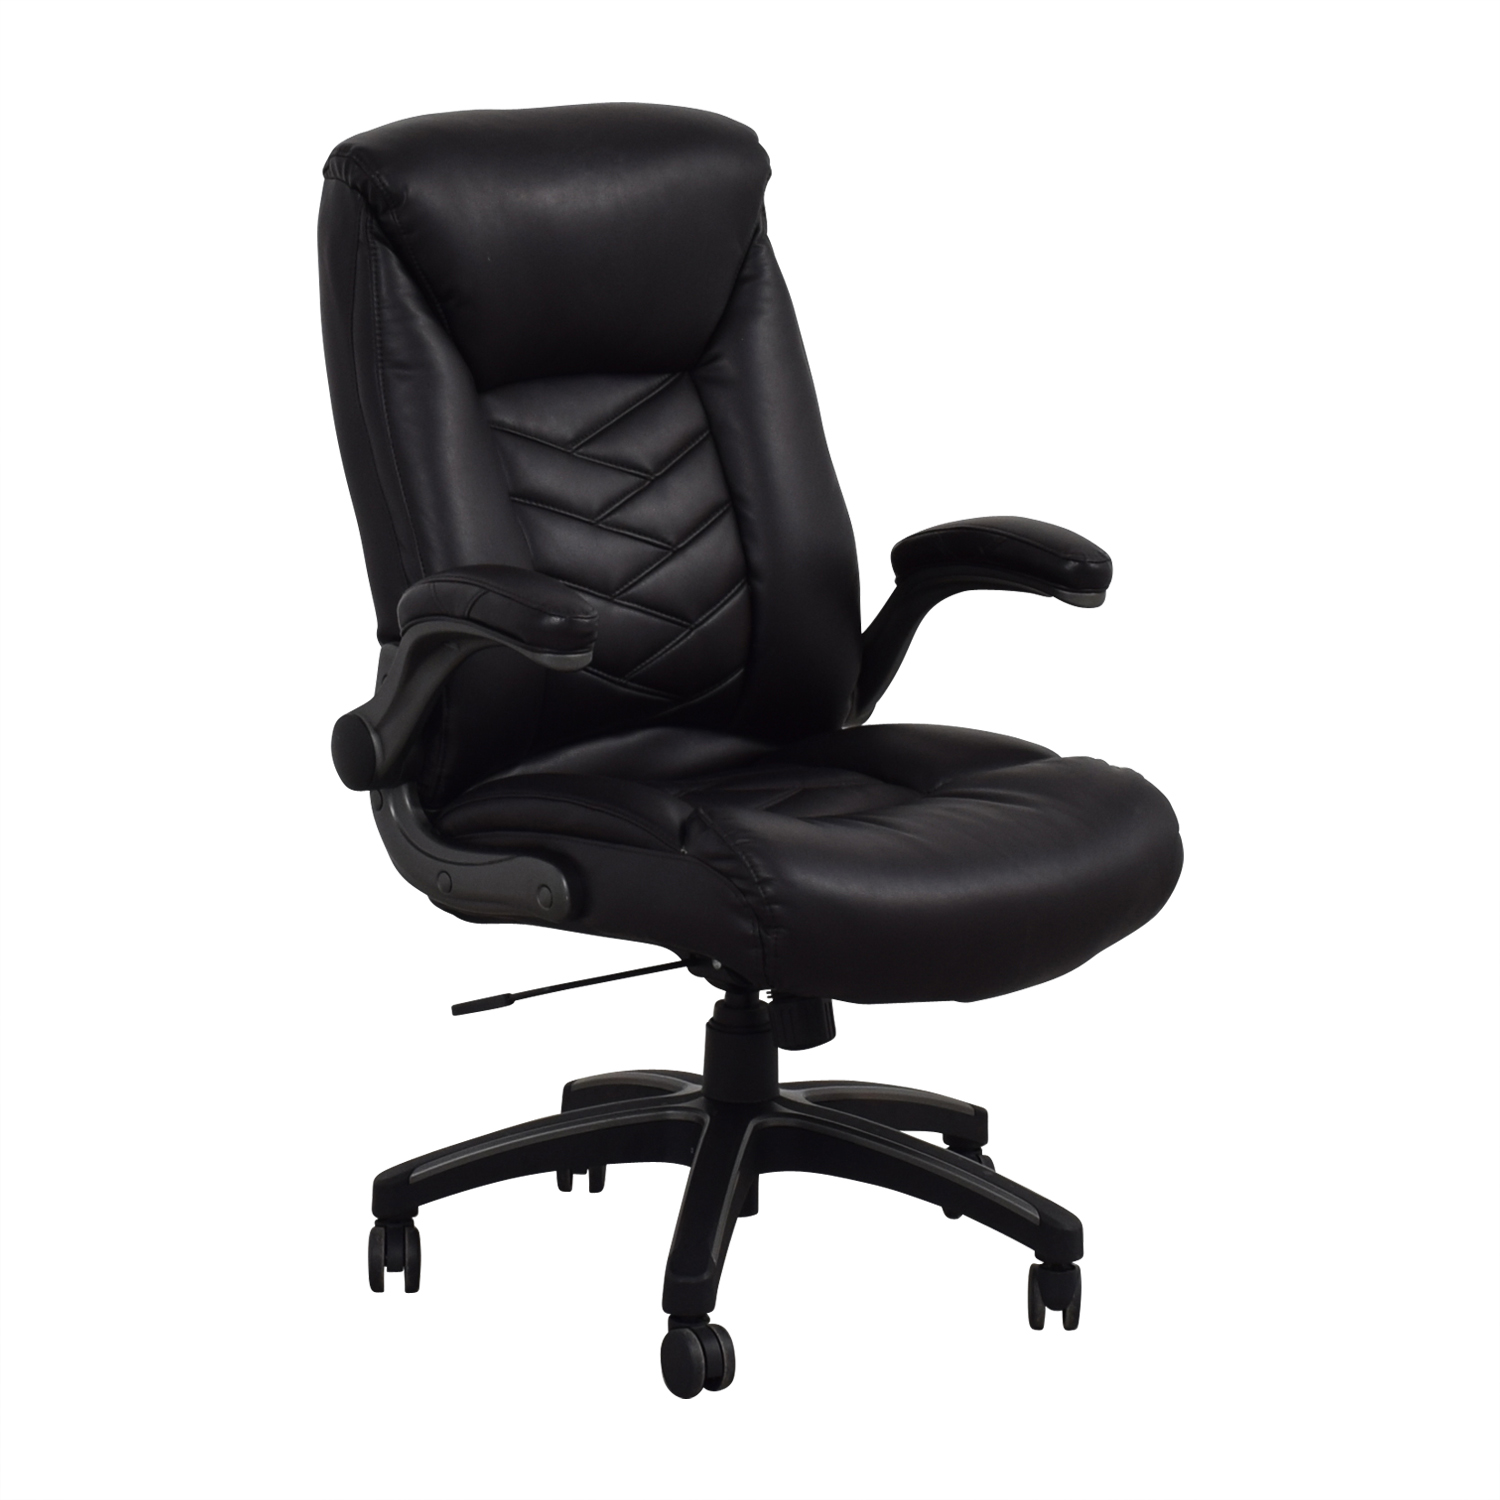 best ergonomic chairs under 500 crushed velvet chair covers ebay 90 off black leather office